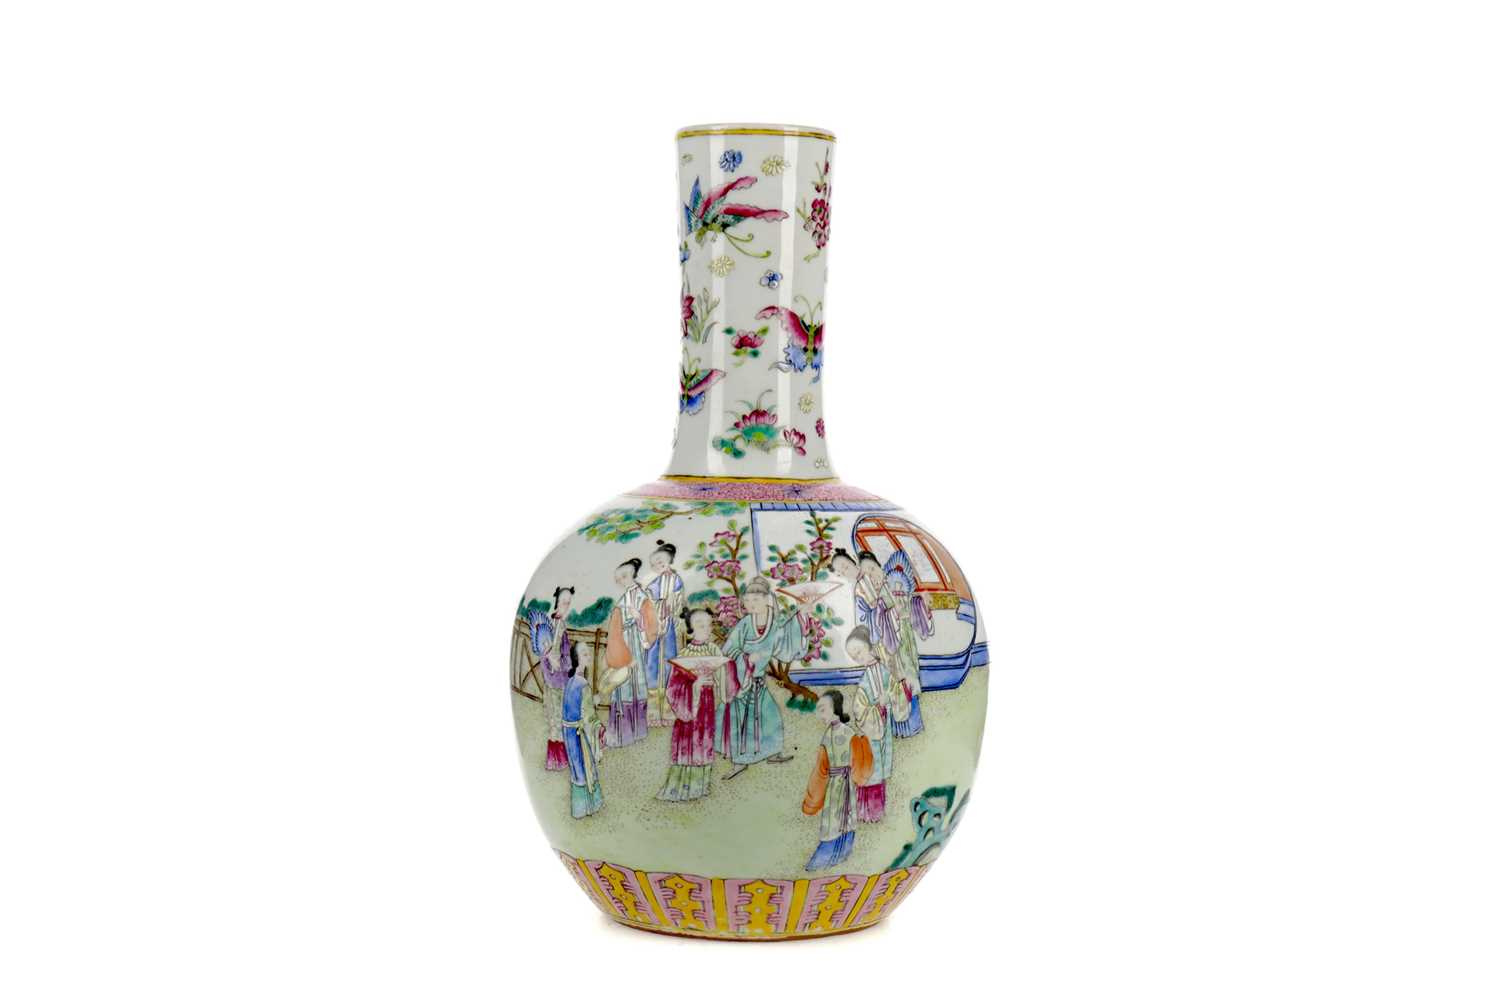 Lot 644 - A LATE 19TH CENTURY CHINESE BOTTLE VASE